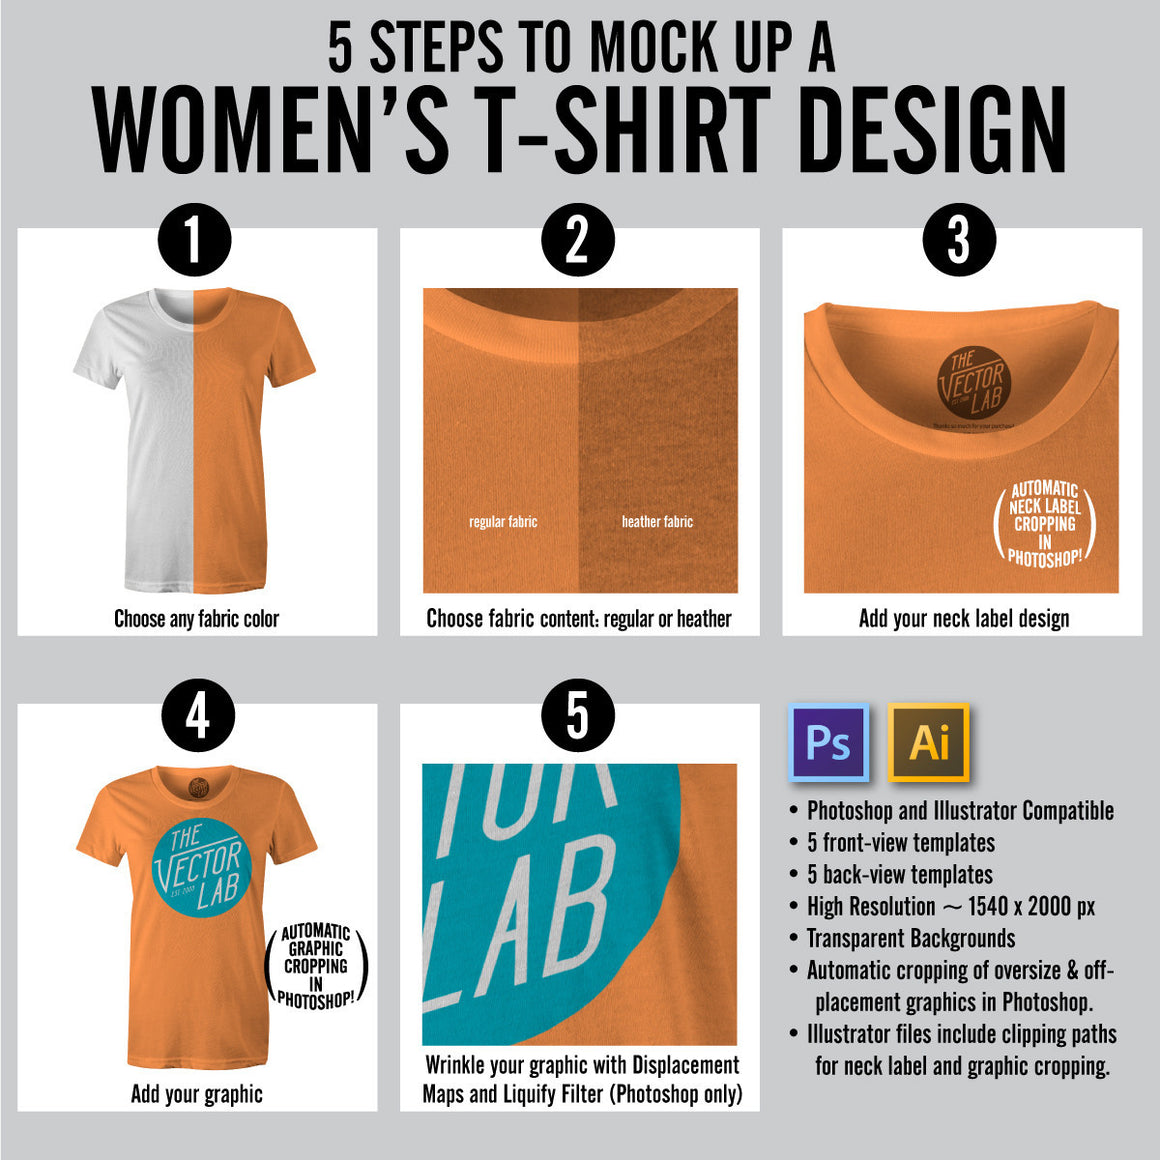 How to Mock Up a Women's T-Shirt Design